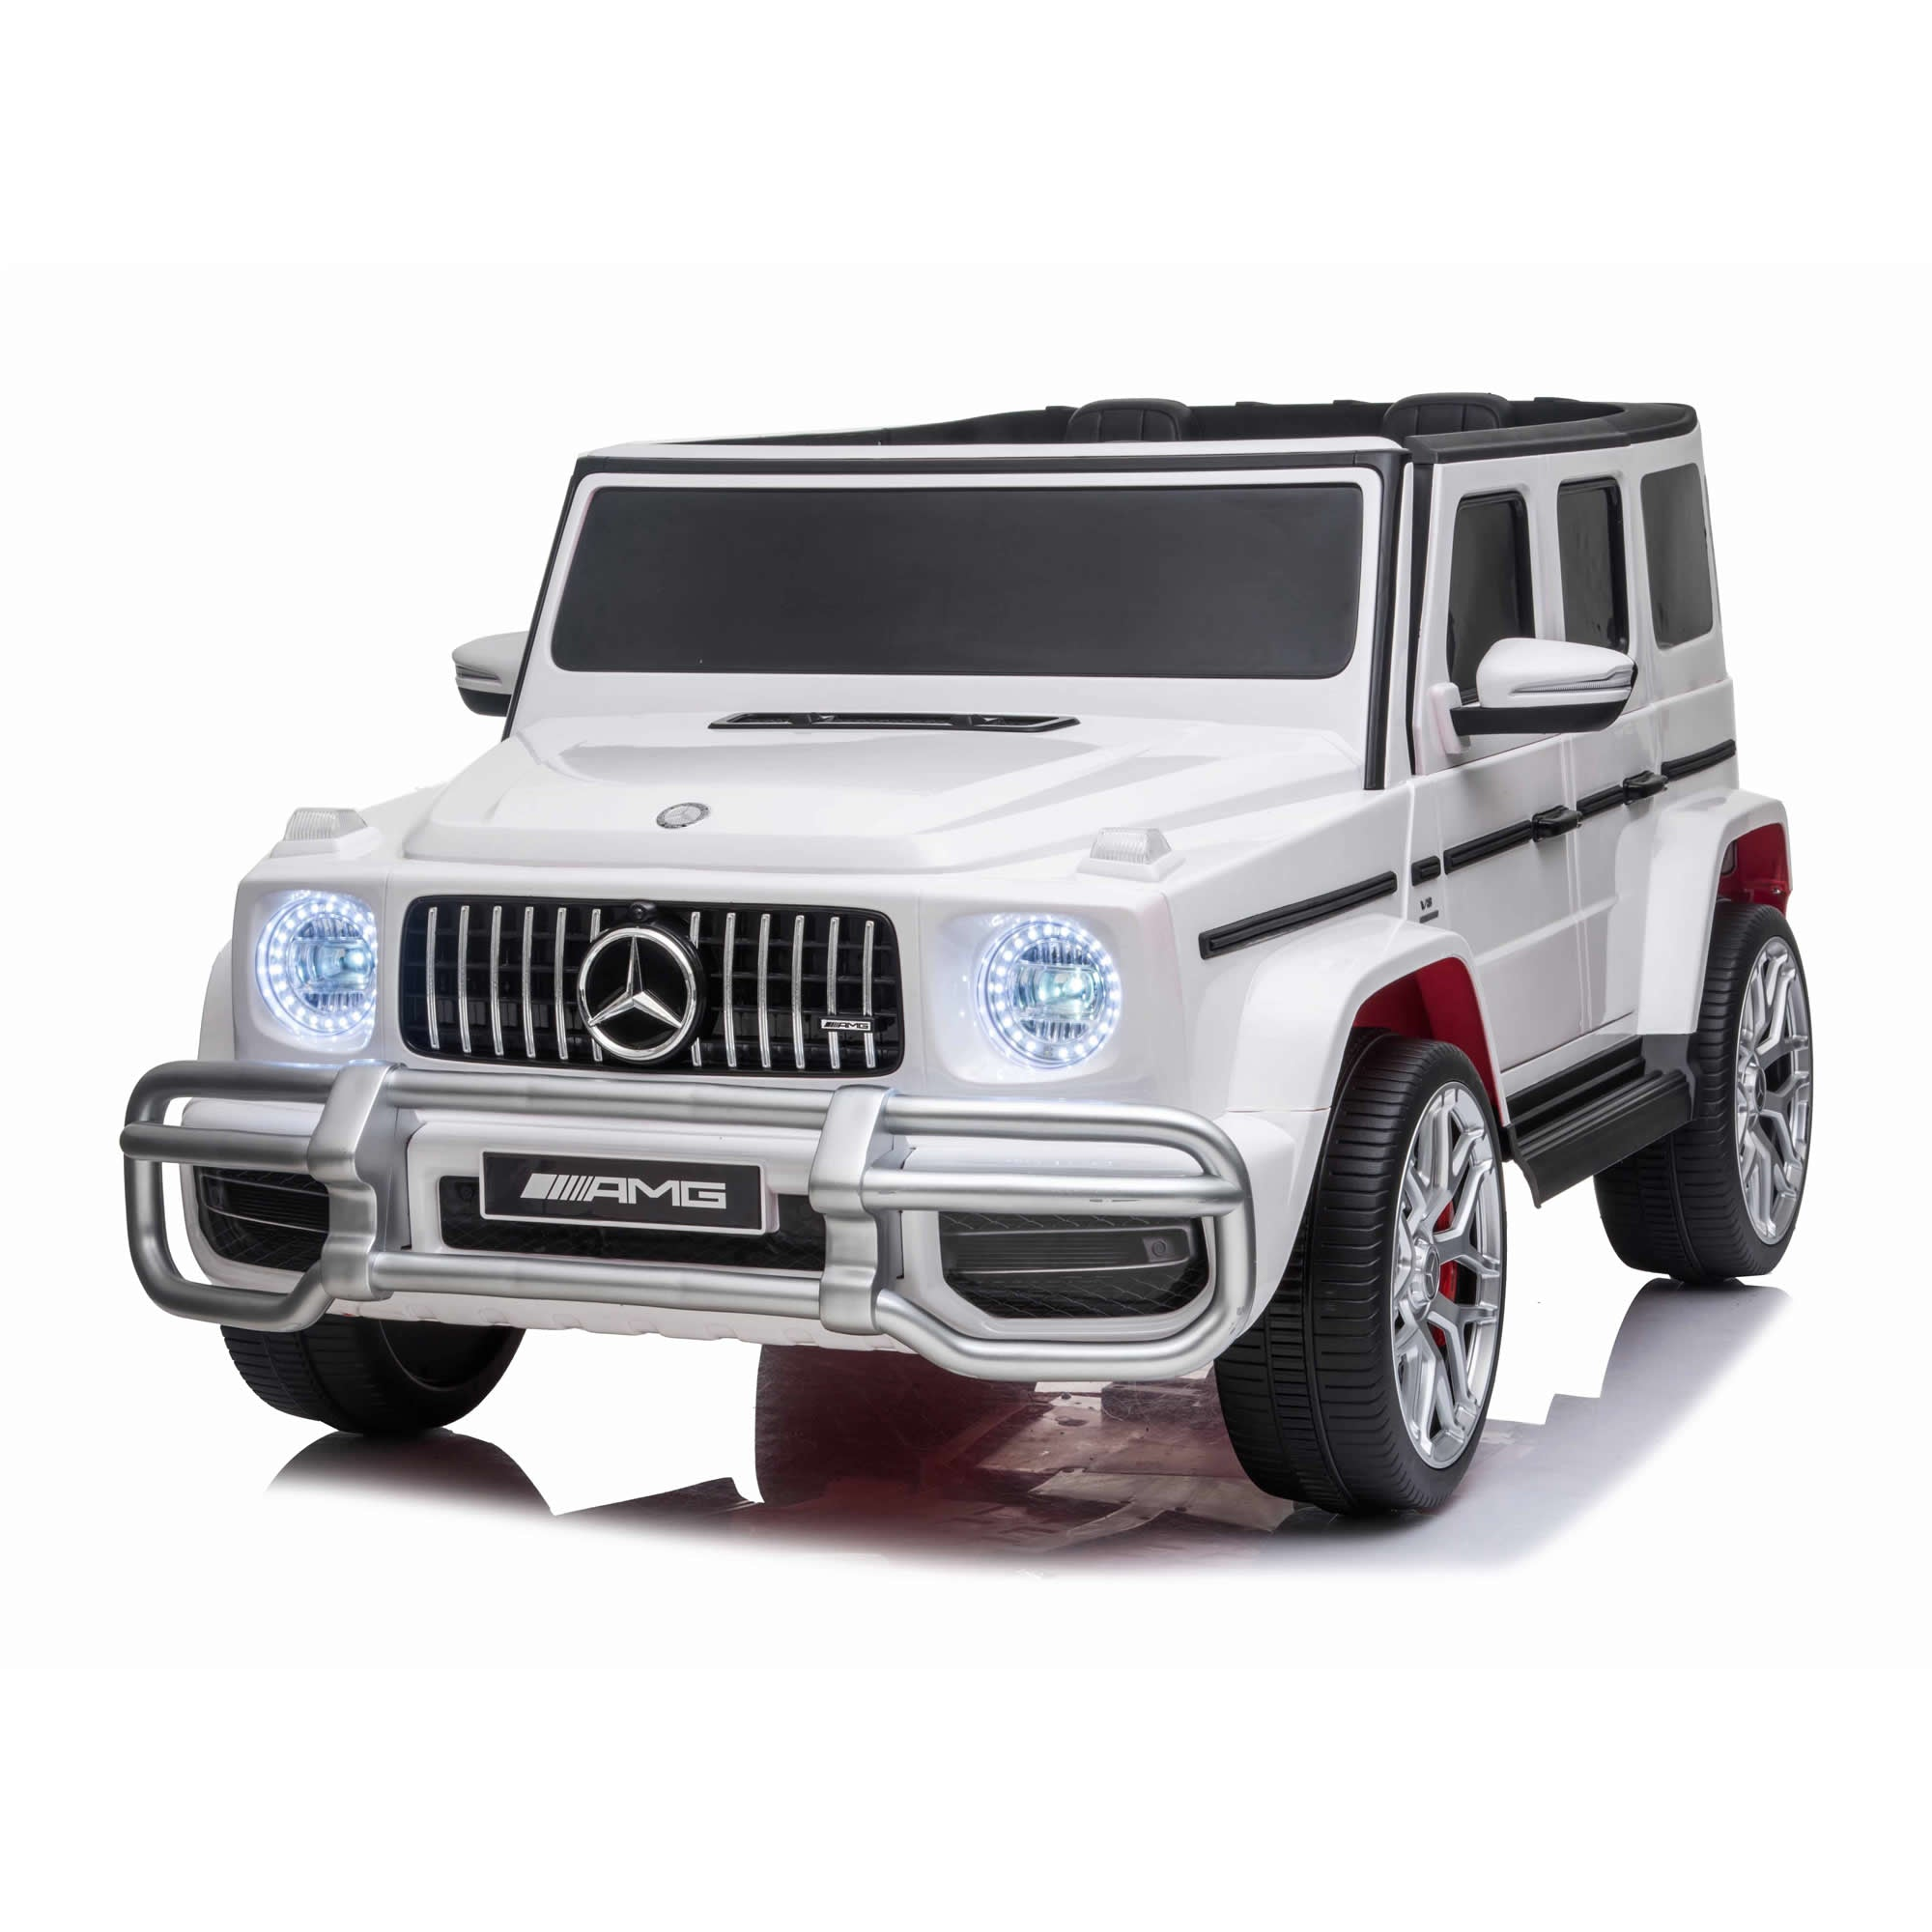 Mercedes G63 24V 4WD Electric Ride on Car with Remote Control - White